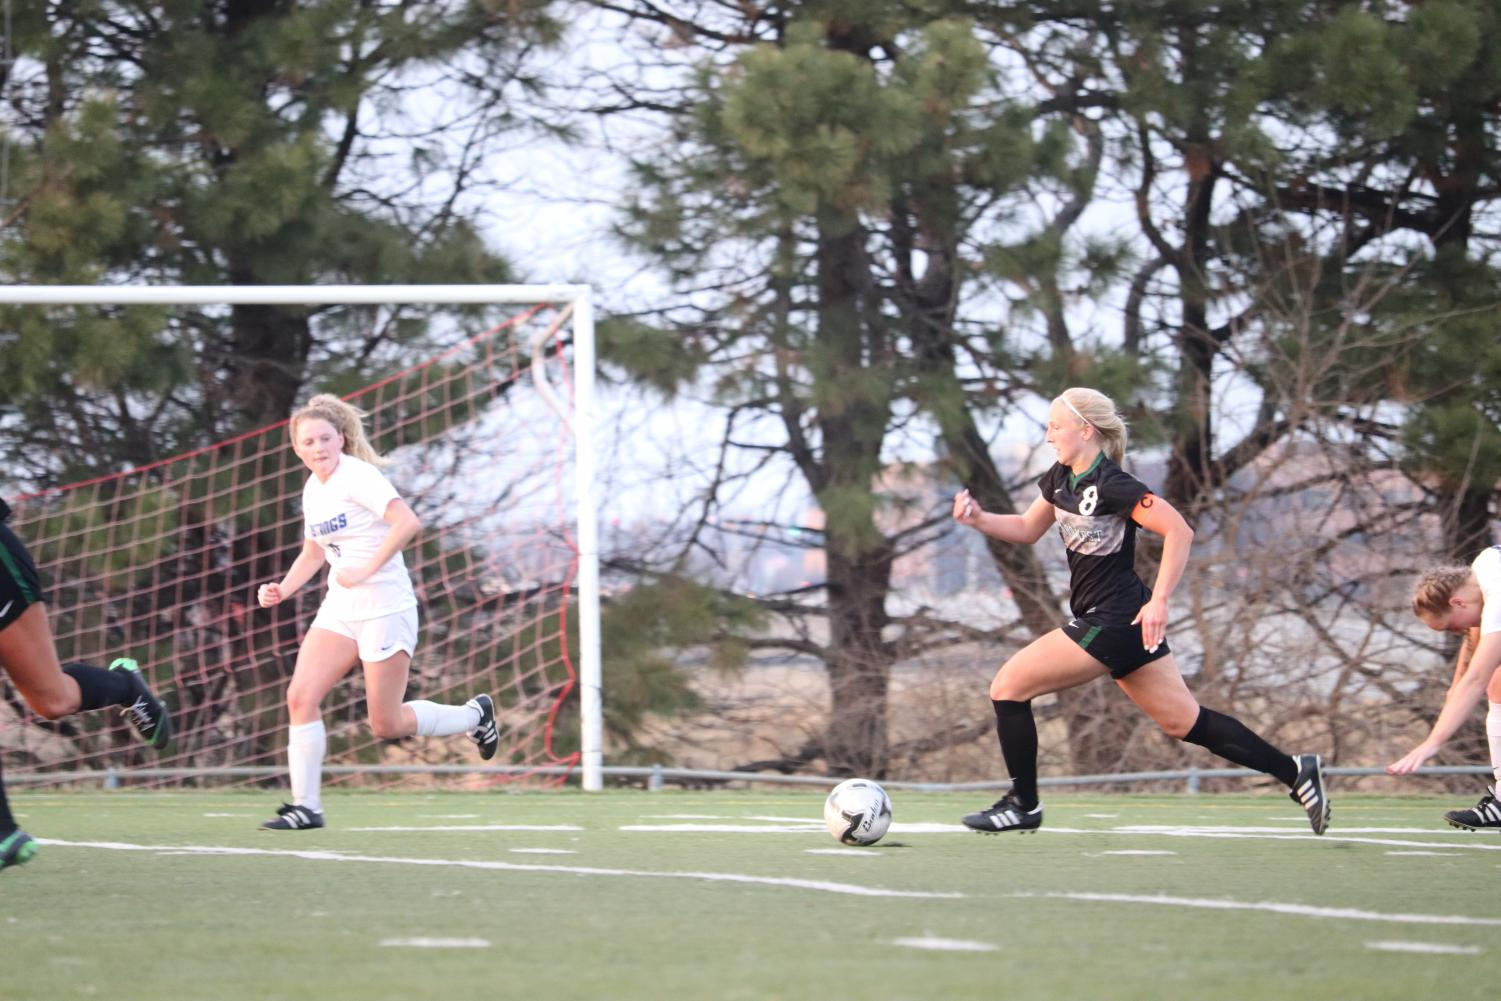 Junior Reagan Raabe dribbles down the field in the second half against Millard North. She scored in their 6-2 win.